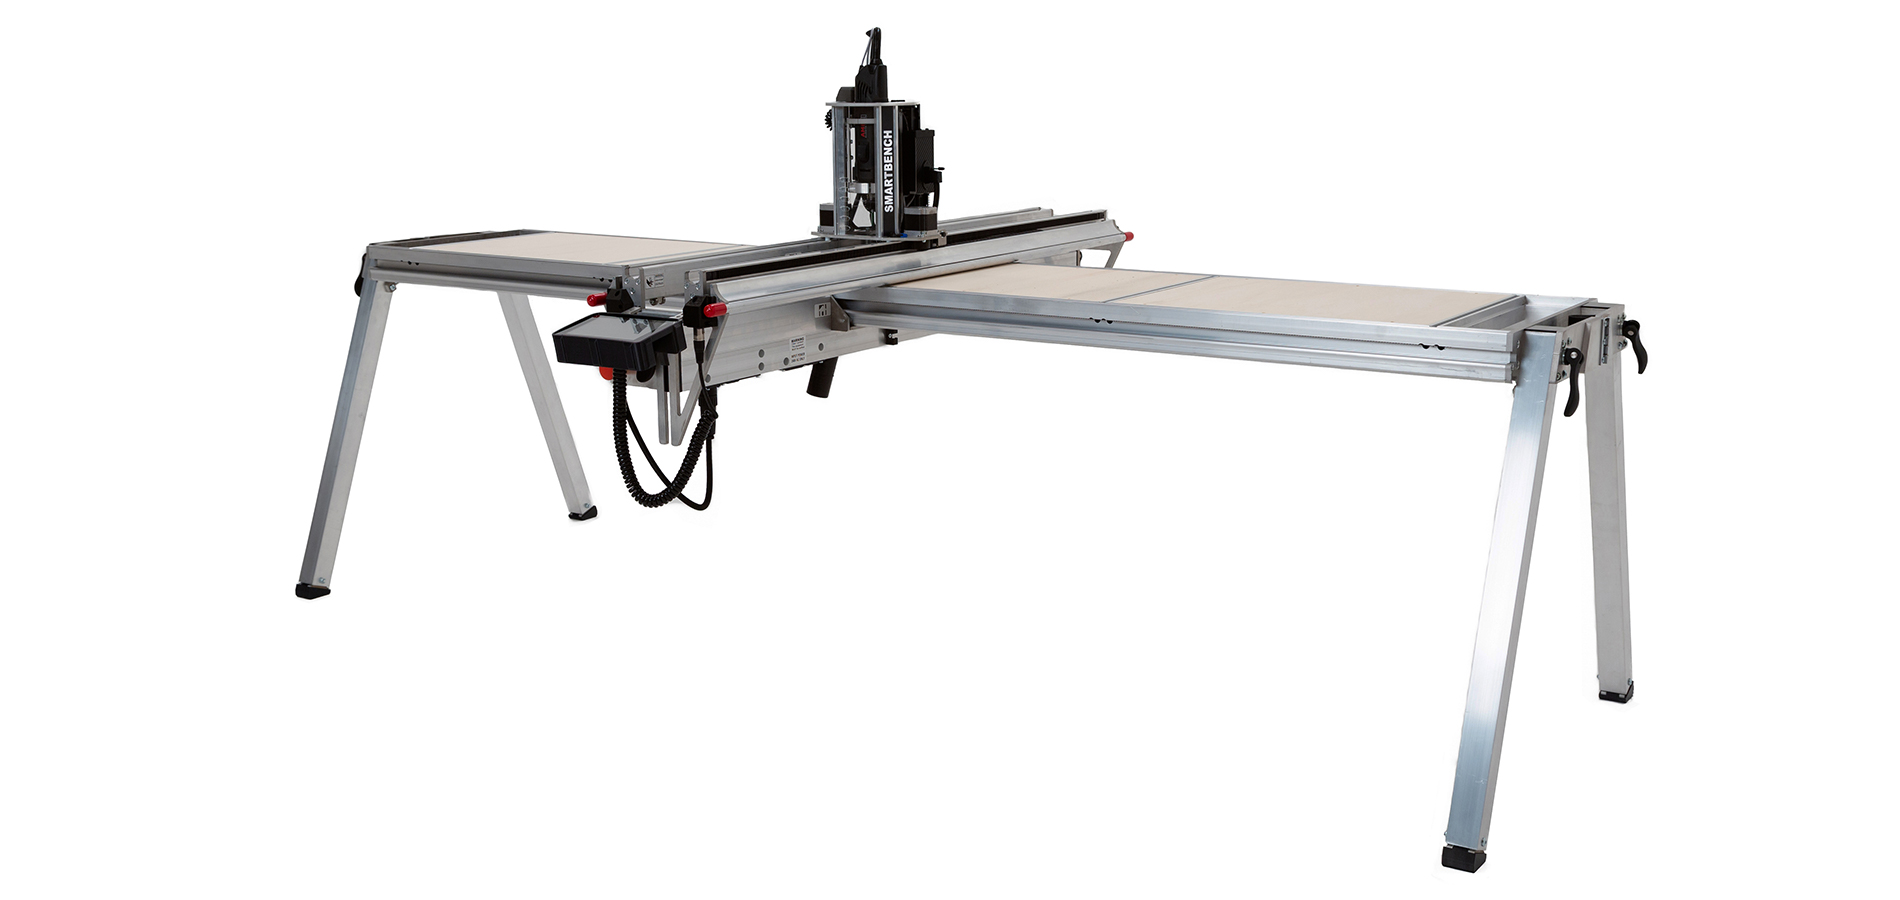 Yeti Tool's SmartBench A CNC Smart Router